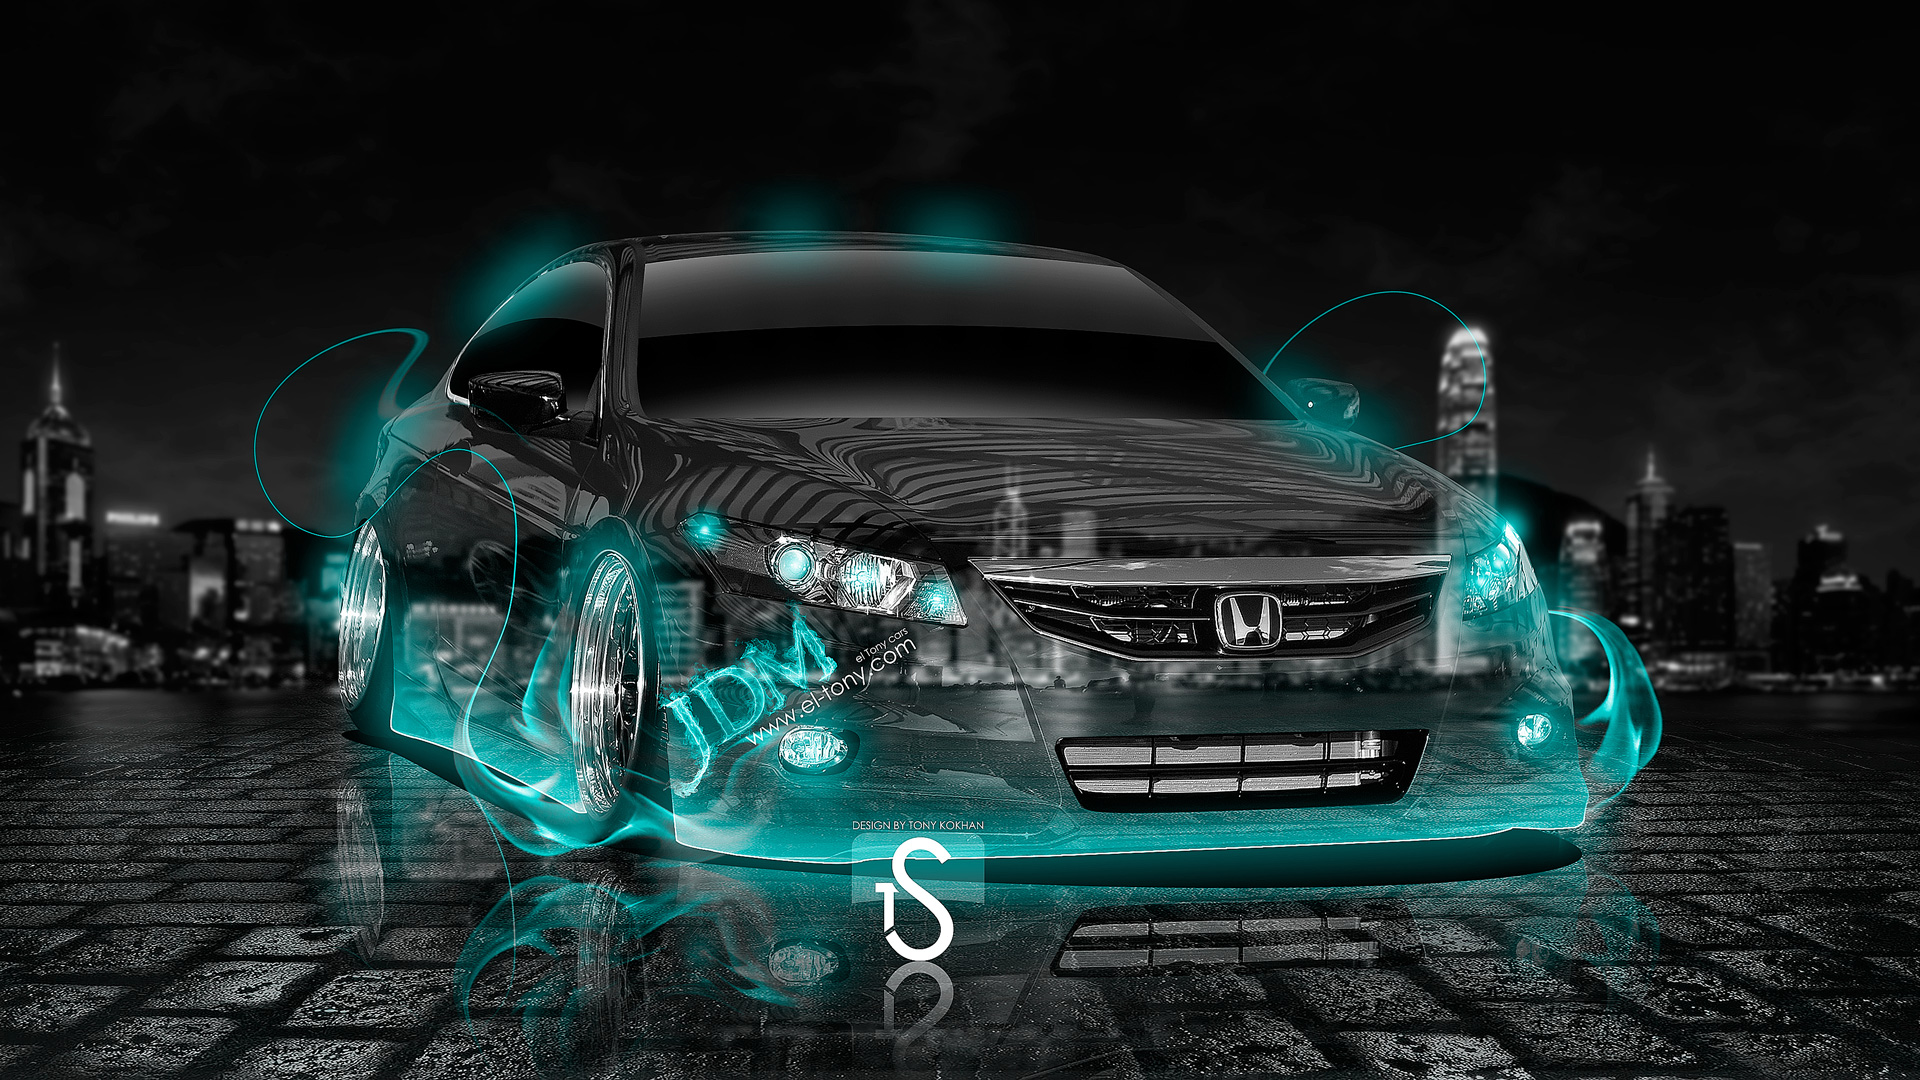 Honda-Civic-SI-Coupe-JDM-Azure-Fire-Crystal-Car-2013-HD-Wallpapers    Honda Jdm Wallpaper